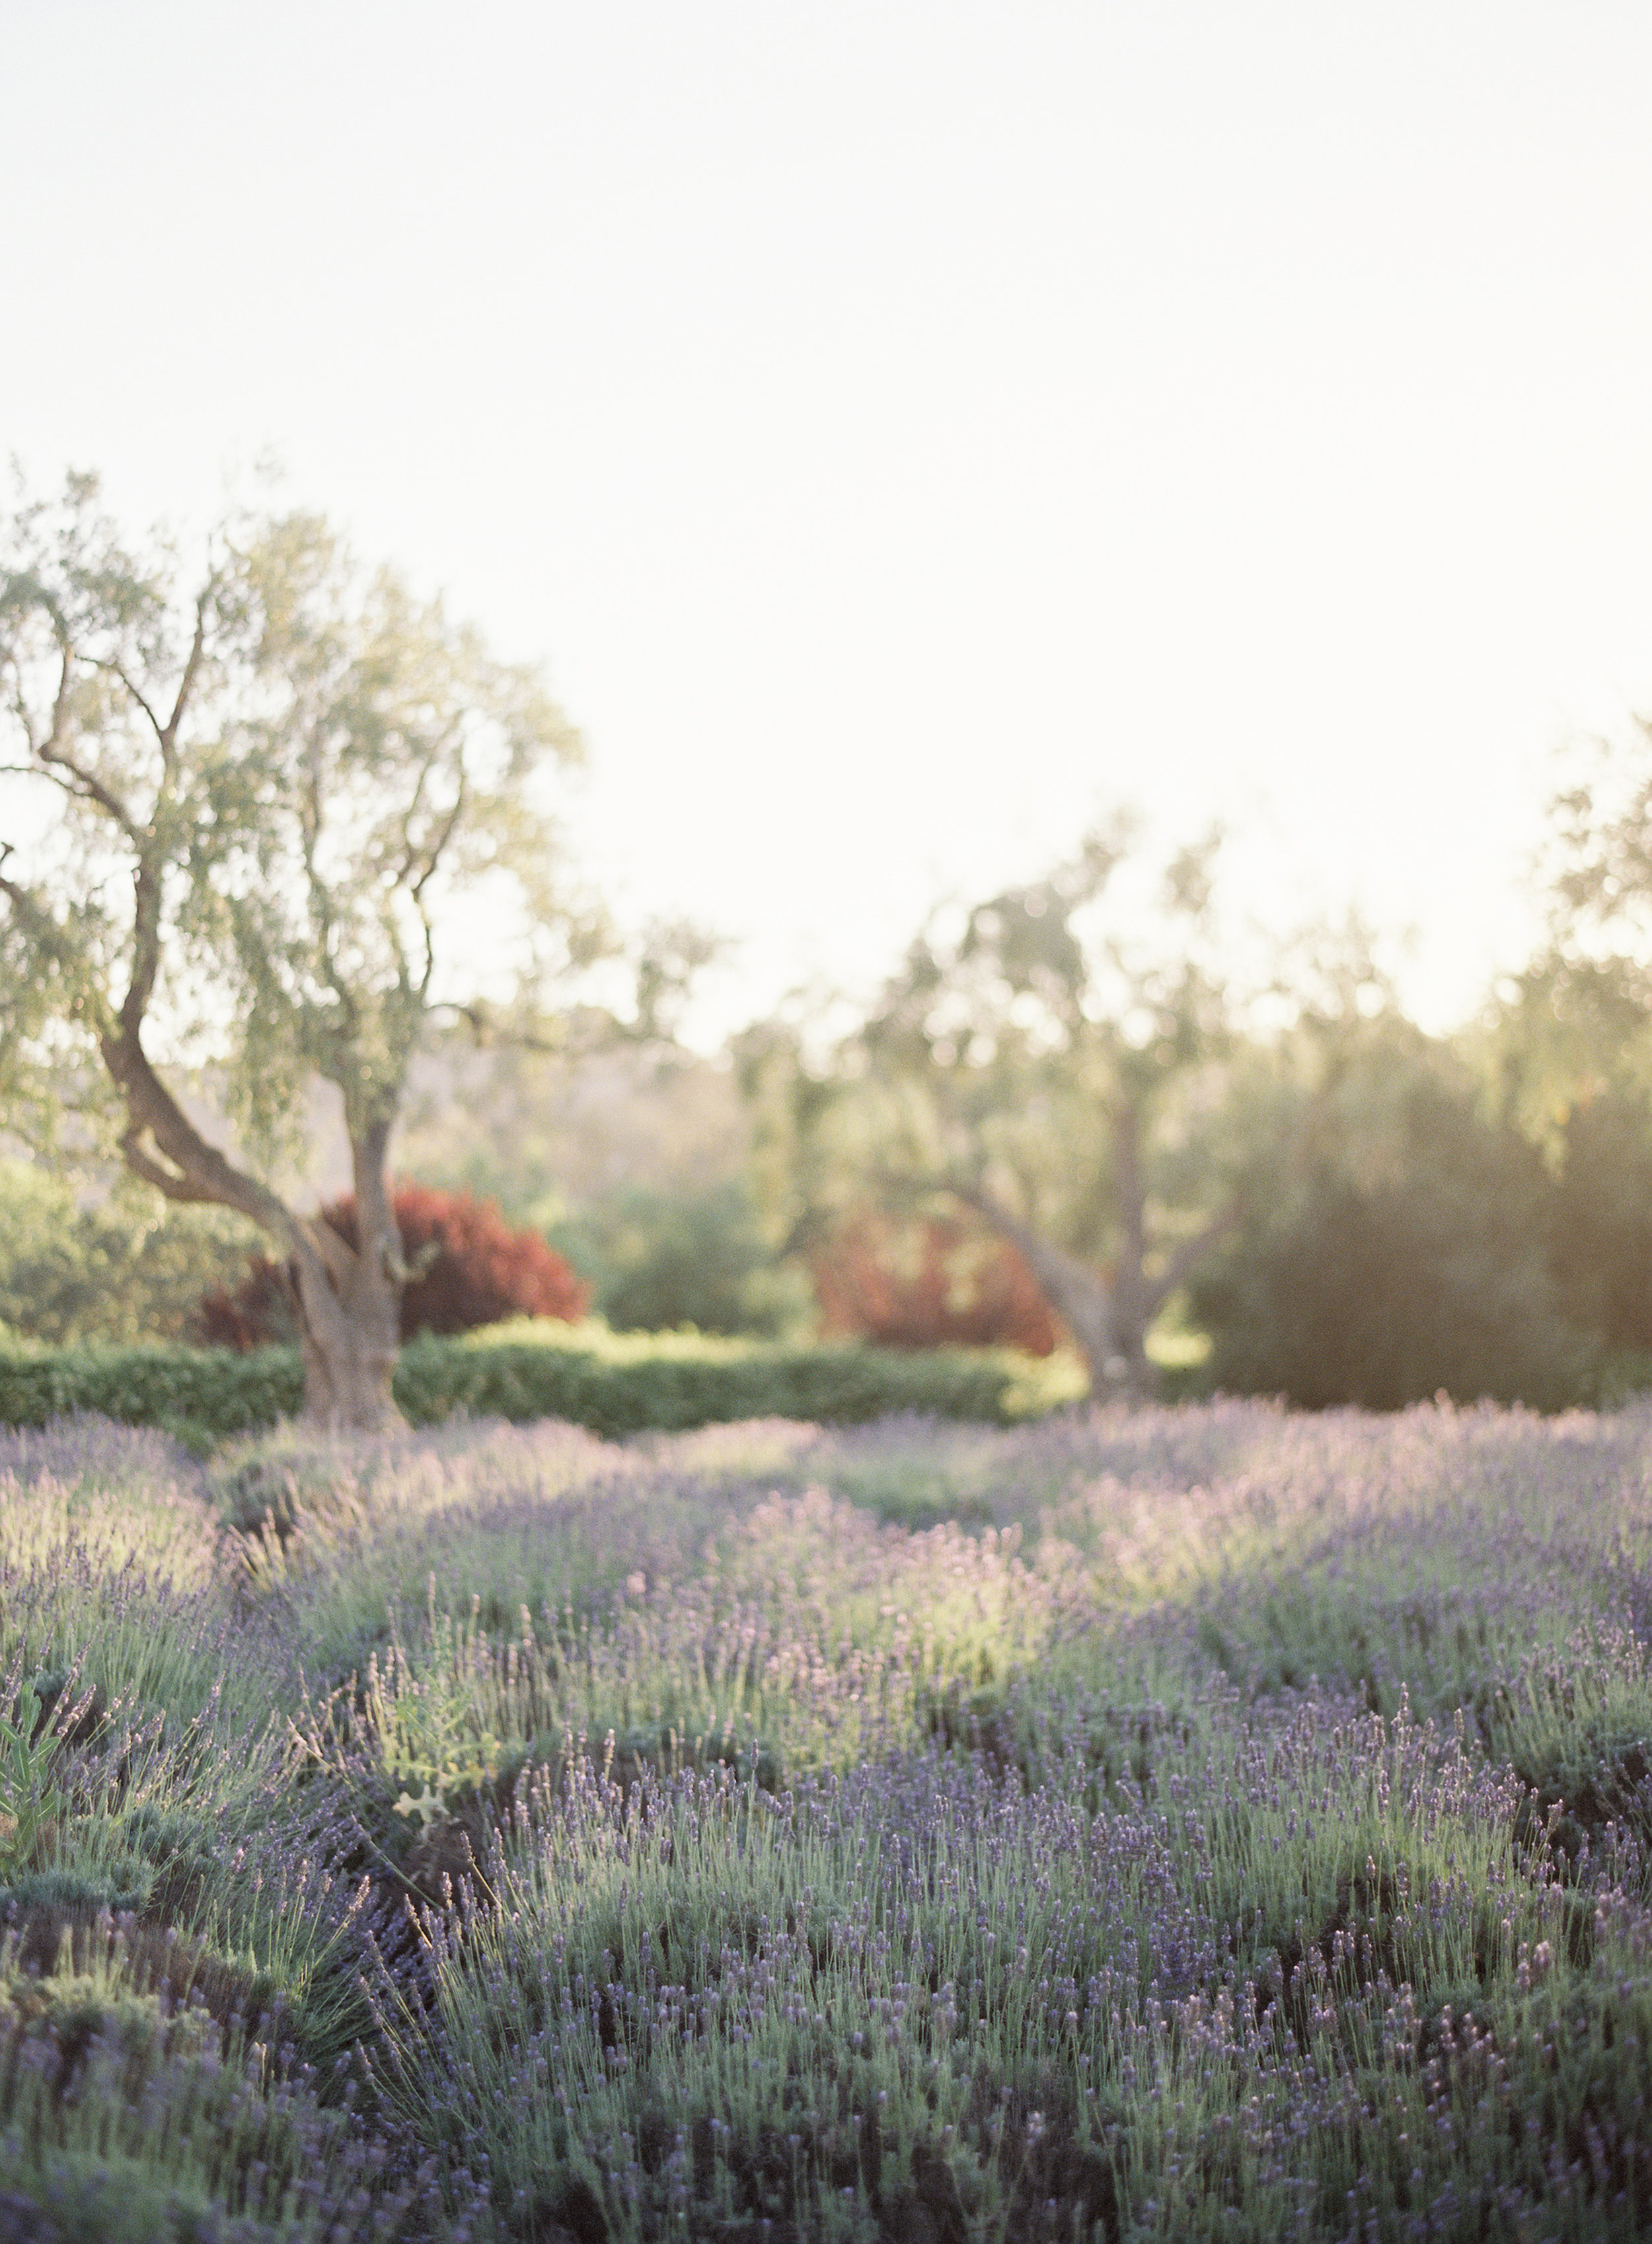 4. - If you're not too tipsy, drive a little out of the way and you'll see quaint farms, vineyards and beautiful private roads. Make sure to visit Clairmont Farm Lavender Co. (2480 Roblar Ave, Los Olivos, CA 93441) to explore their lavender field and pick up some natural lavender products.